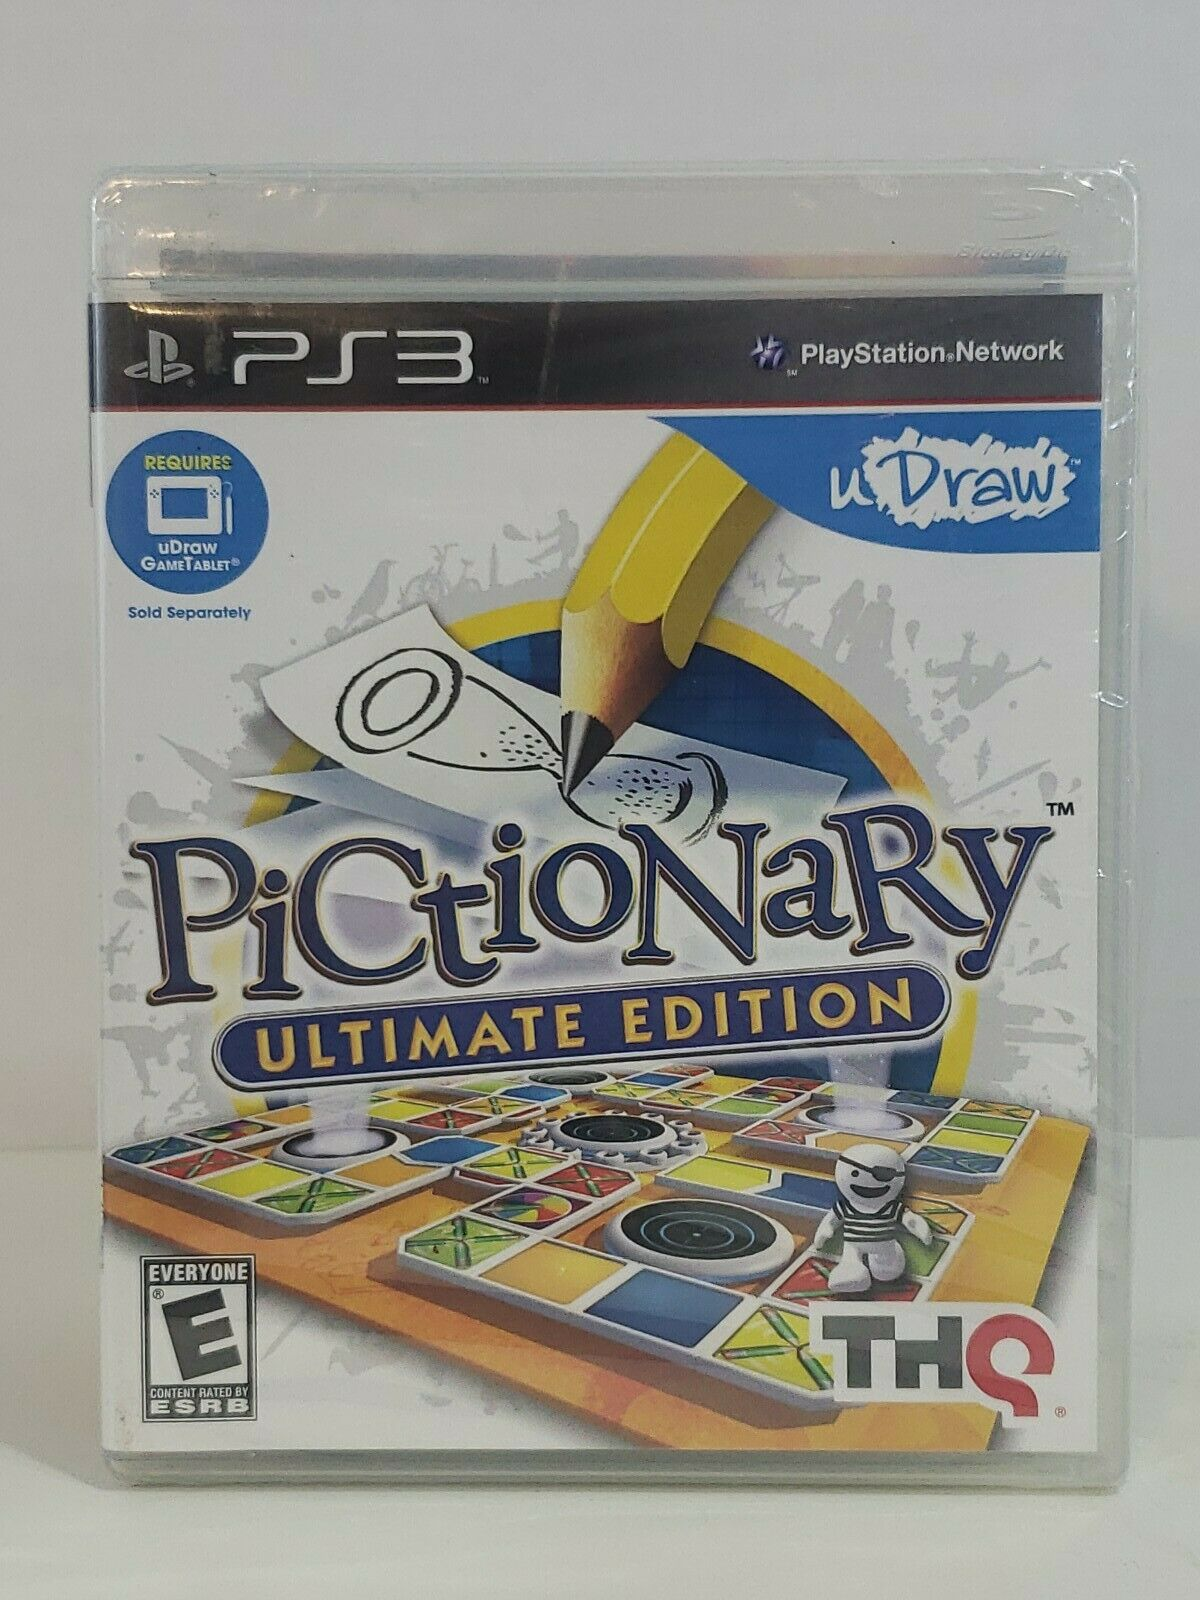 uDraw Pictionary Ultimate Edition: Playstation 3 NEW SEALED